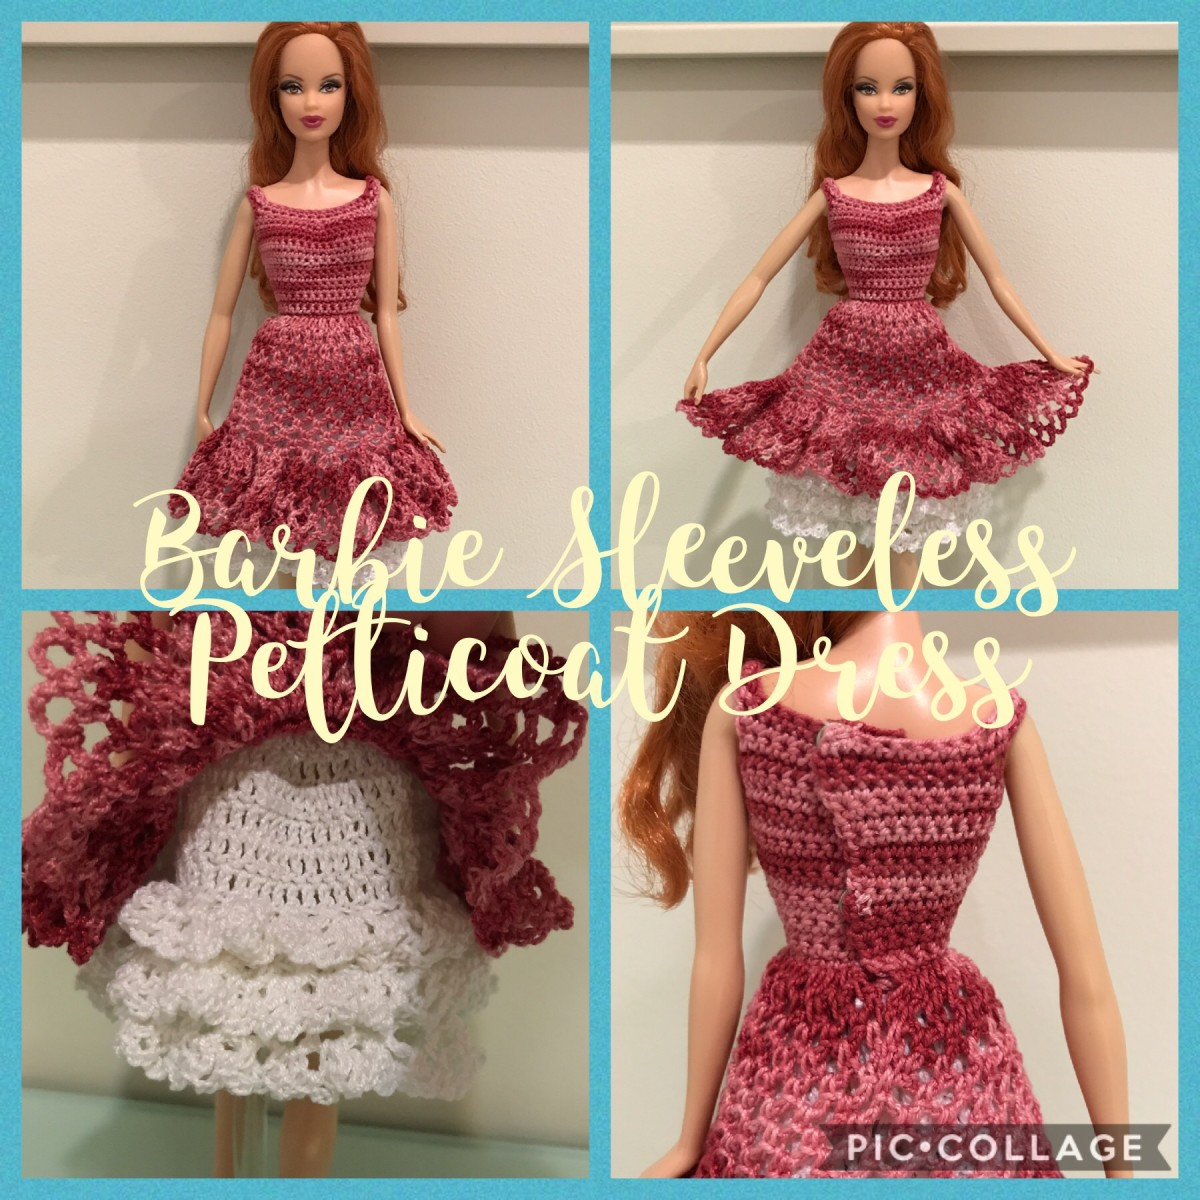 Barbie Sleeveless Petticoat Dress (Free Crochet Pattern)